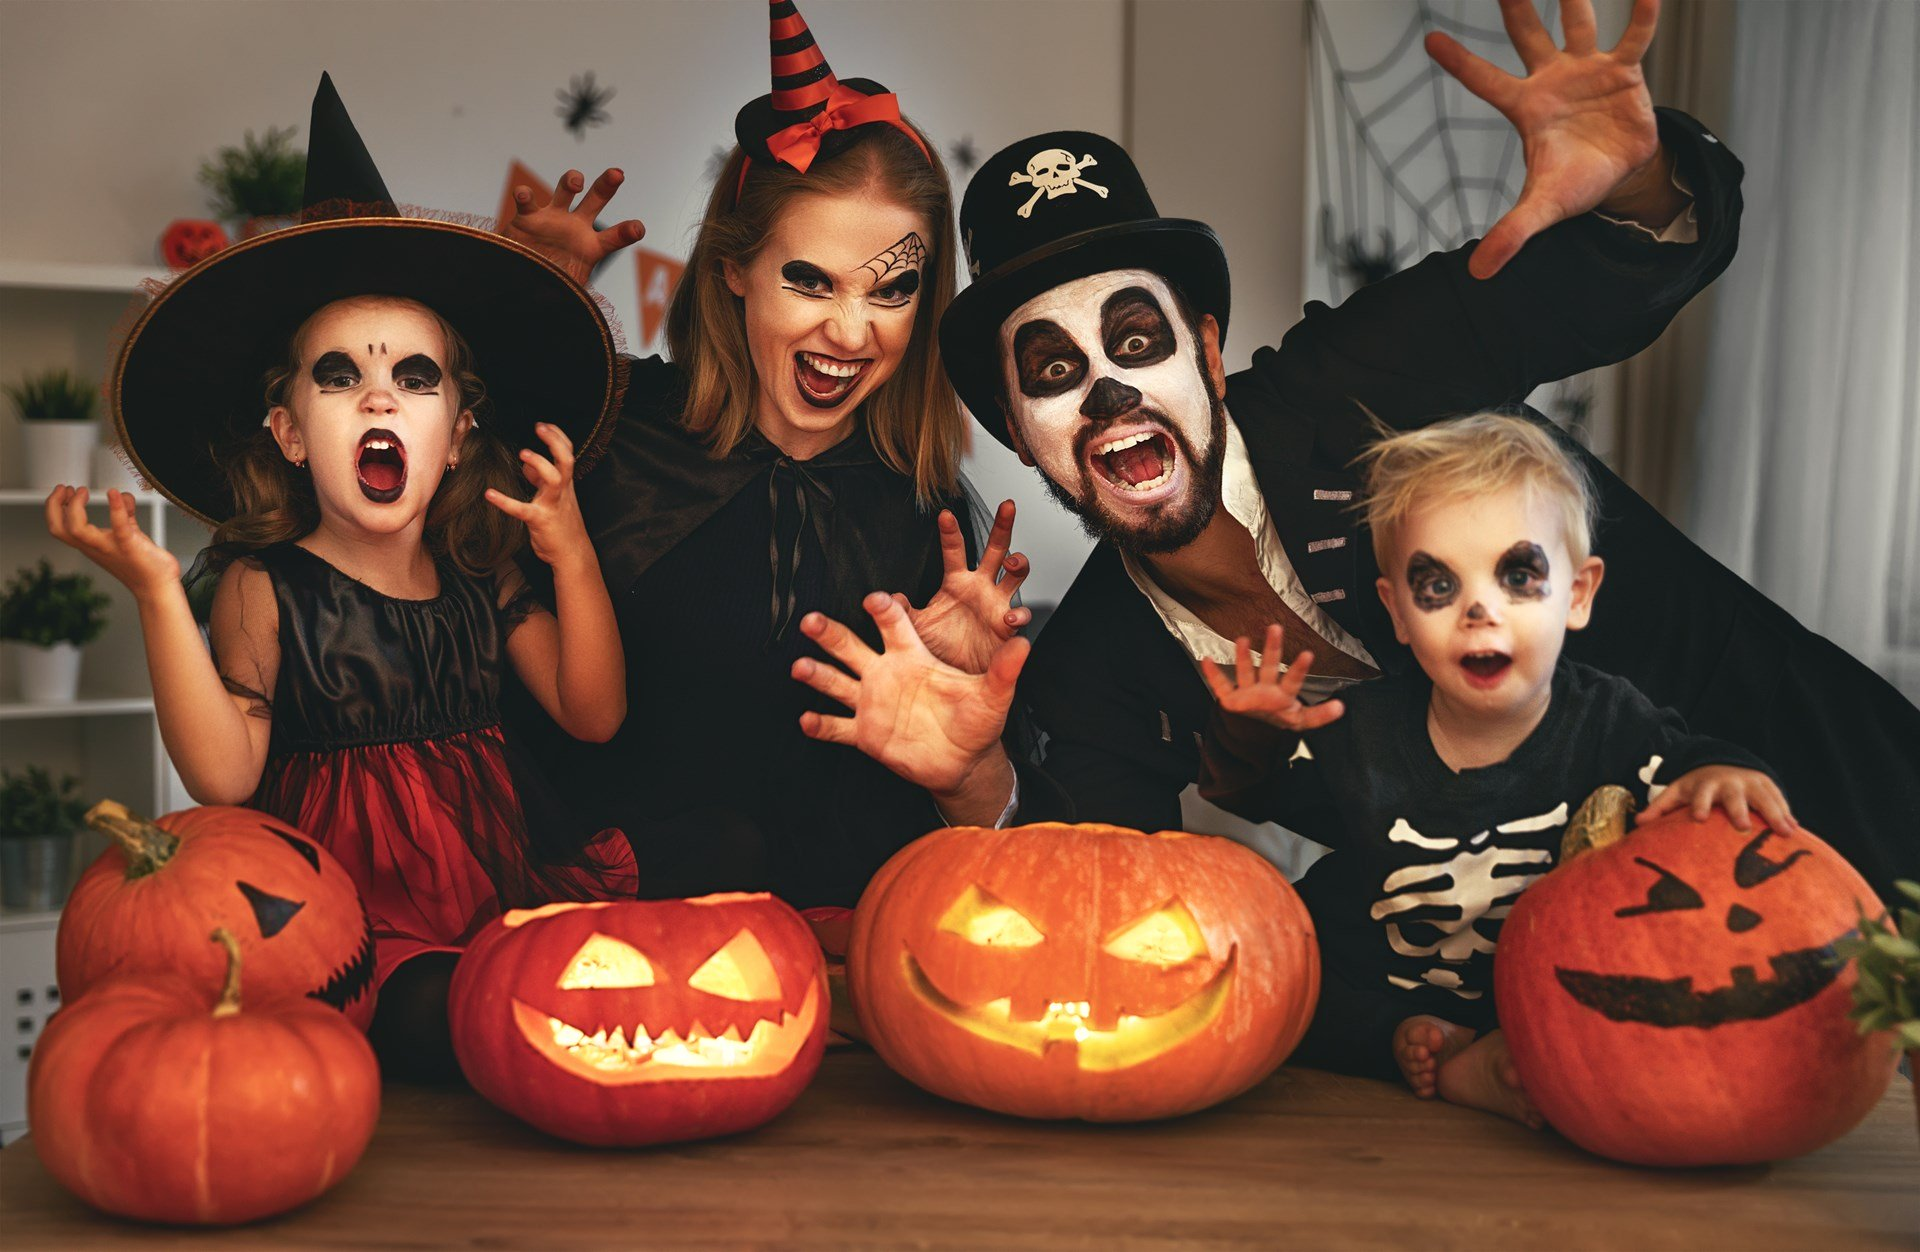 Photo of Disfrute las celebraciones de Halloween sin accidentes